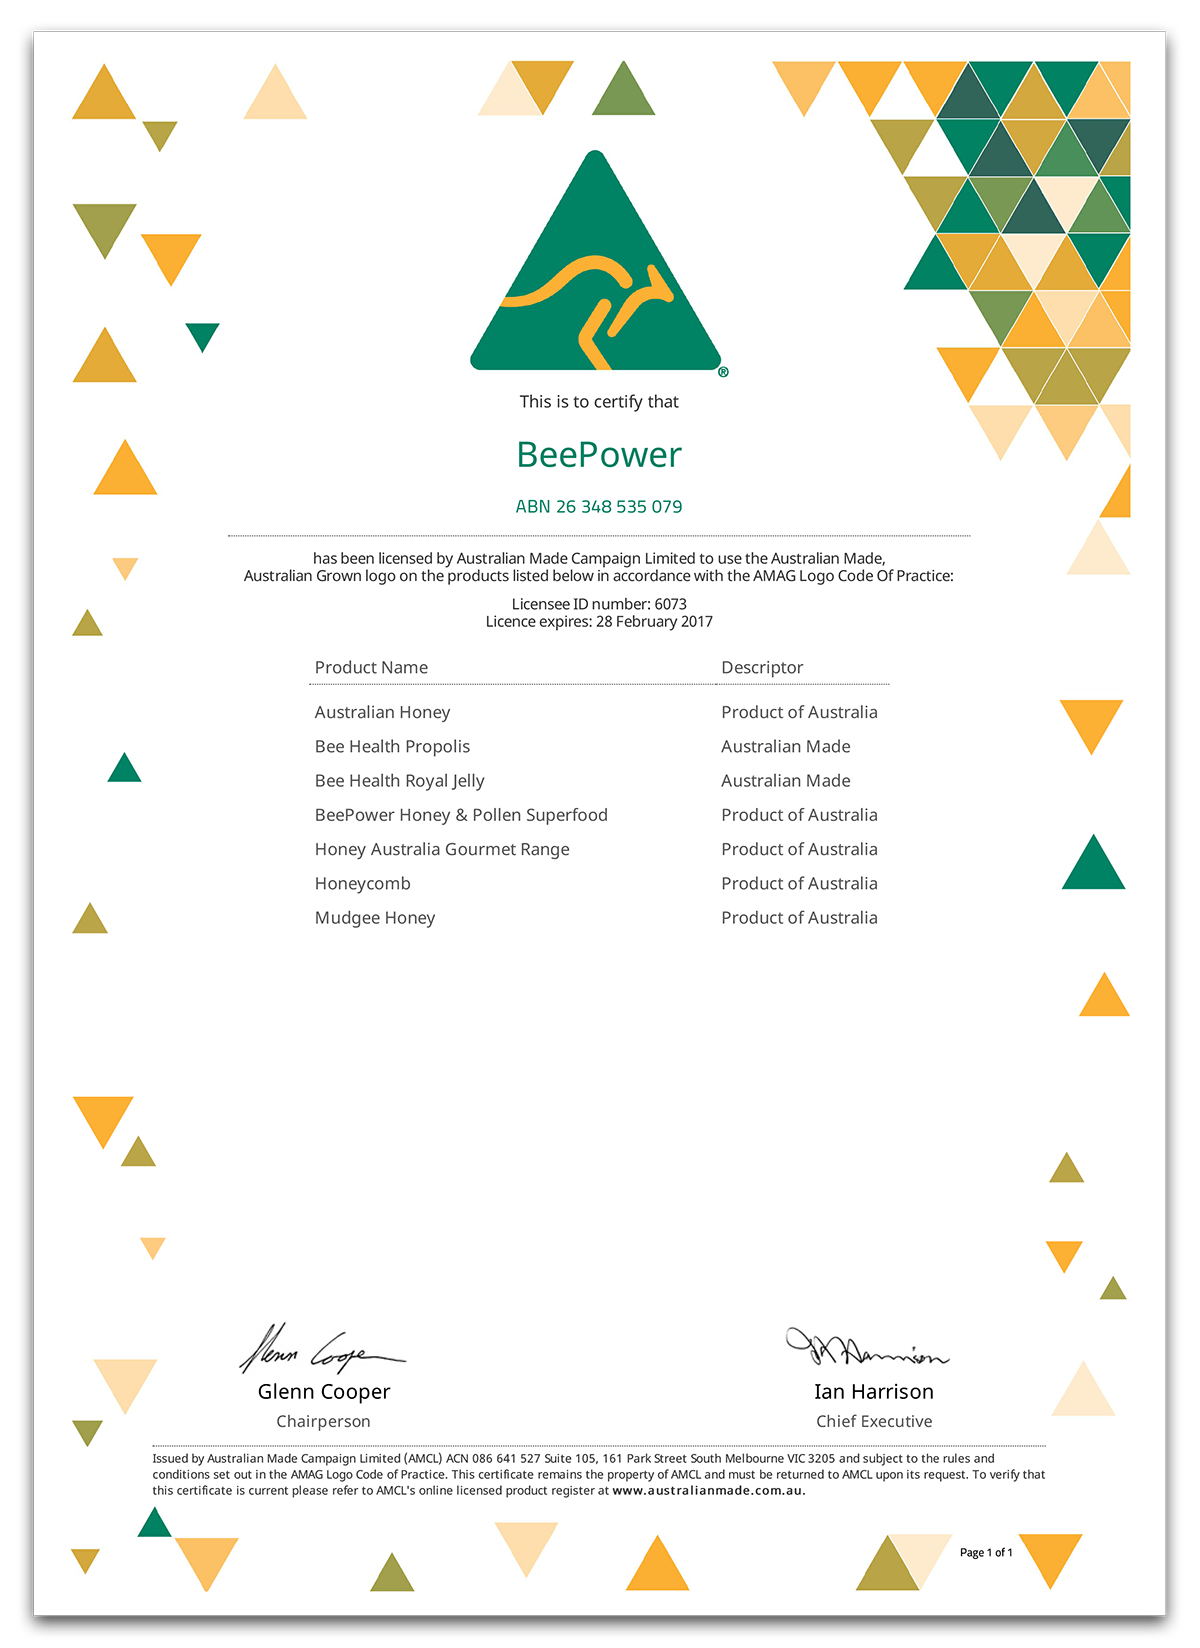 Beepower Honey is a certified Product of Australia